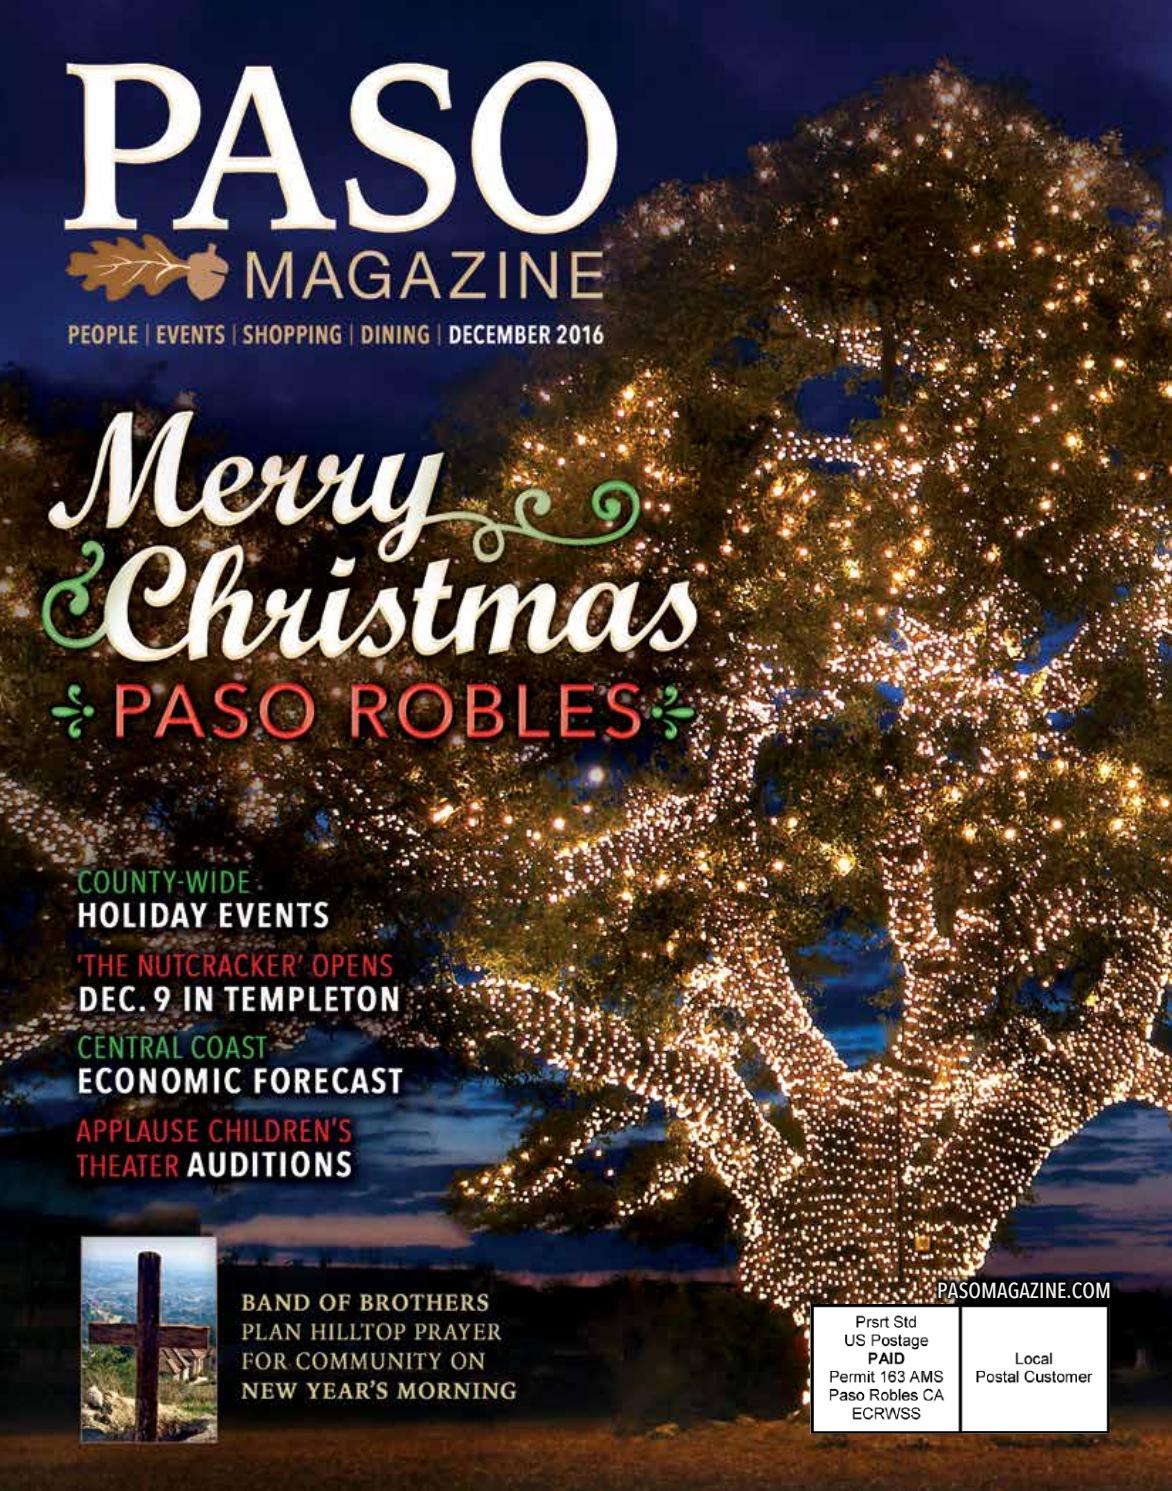 2016 december paso magazine by Nicholas Mattson - issuu